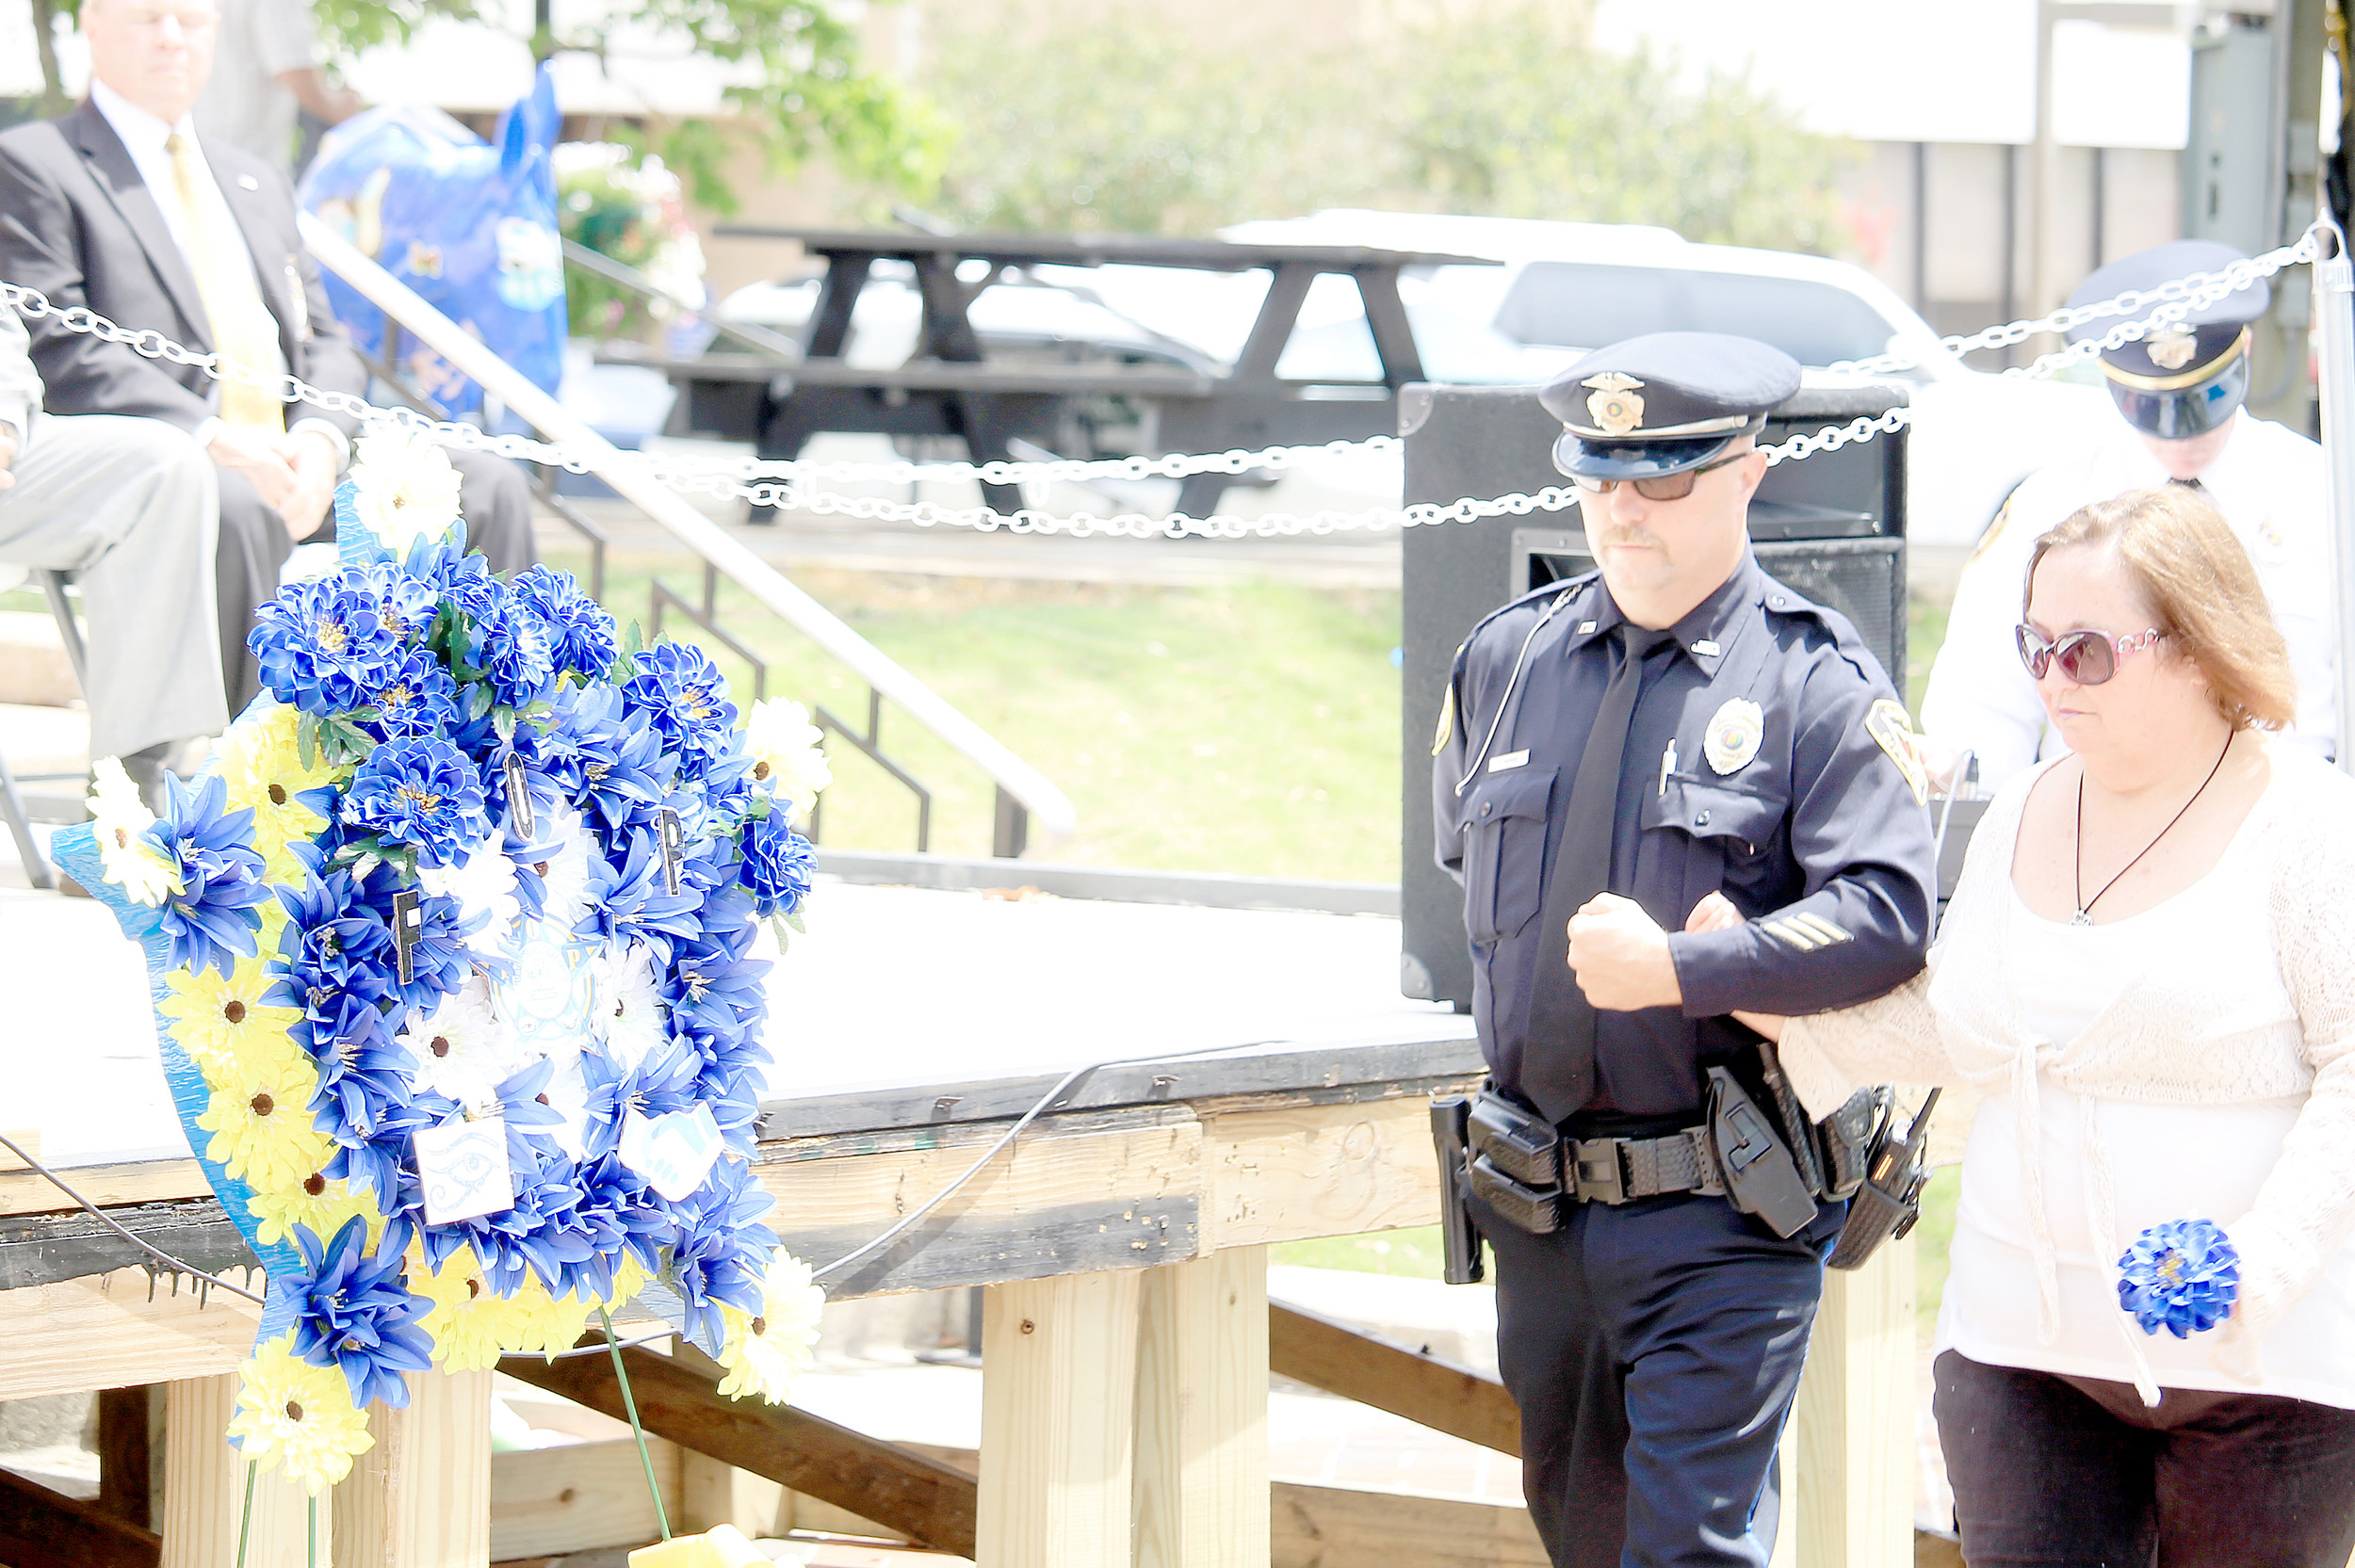 Officer Richard Hobbs, son of James D. Hobbs, escorts his mother, Gale, at the Fraternal Order of Police's annual fallen officer memorial service on Wednesday. James Hobbs' name was recently added to the fallen officers monument at the Walker County Courthouse Square.  Daily Mountain Eagle - Jennifer Cohron